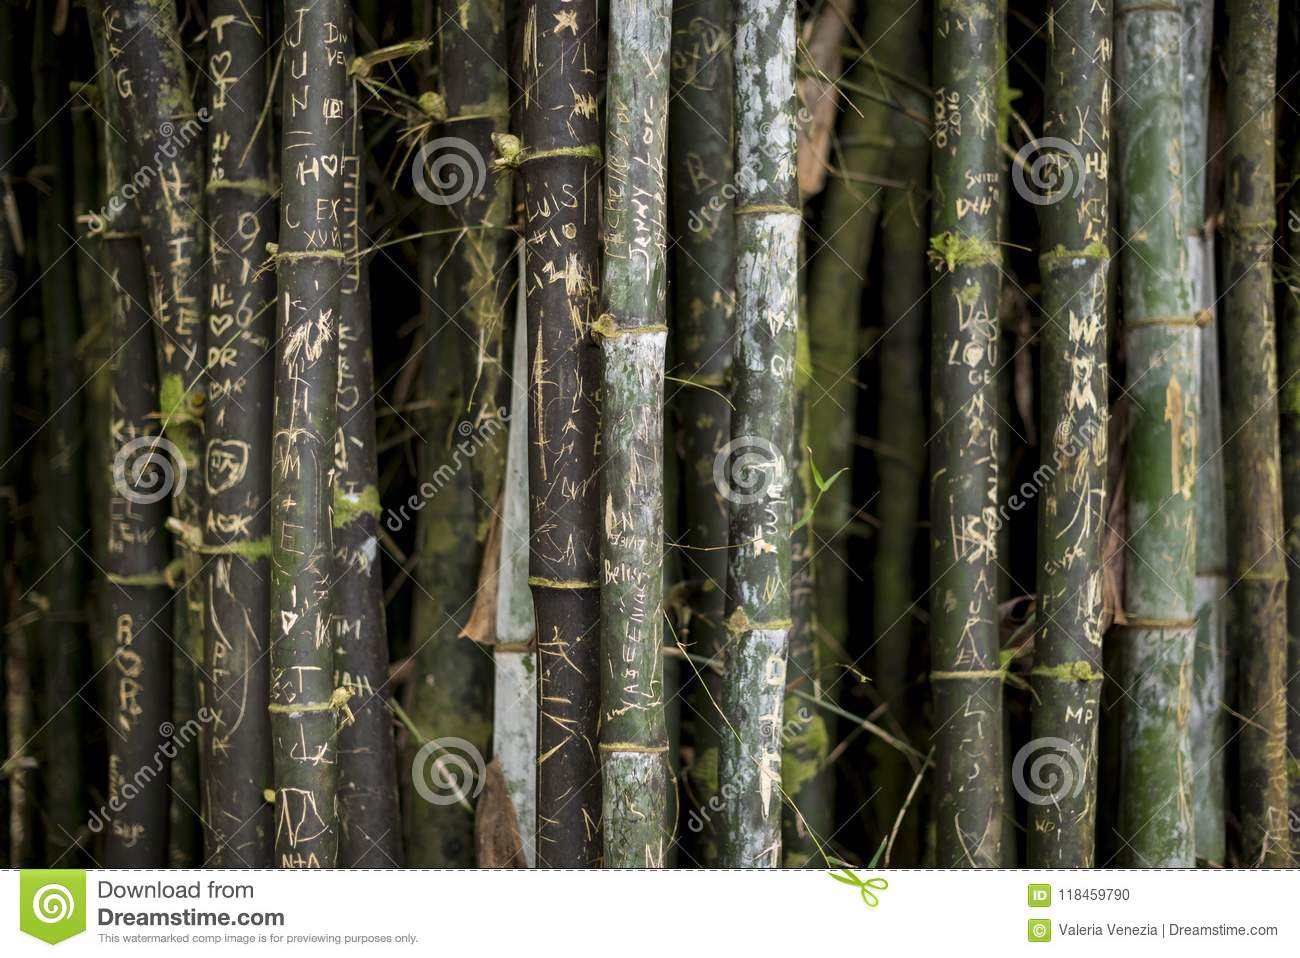 A close up of written bamboo rods